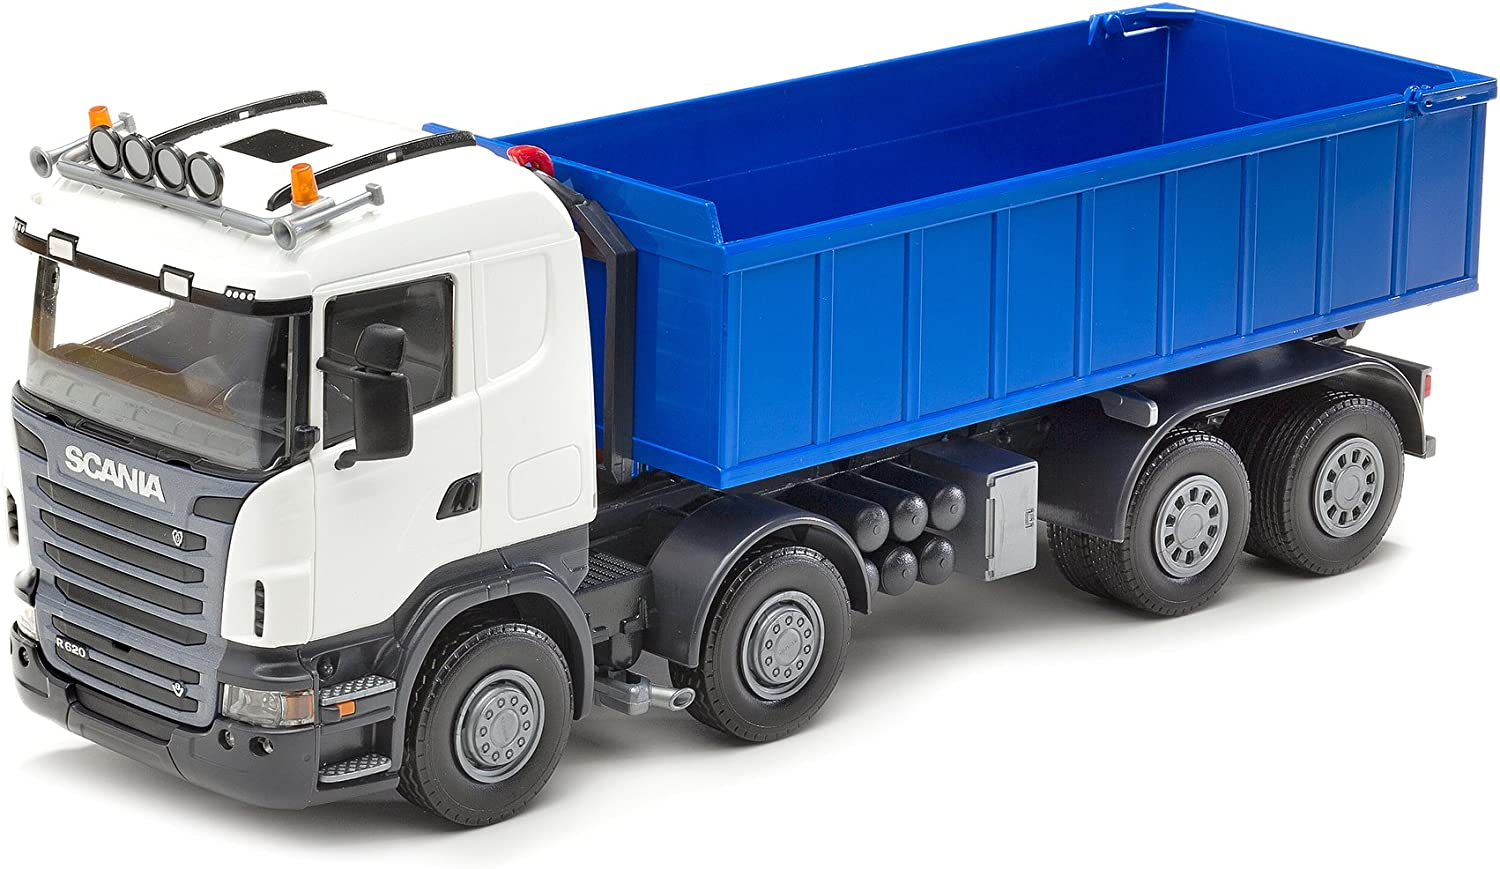 Langley Models Case International 956XL Turbo Tractor O Scale 1 43 UNPAINTED Kit M18